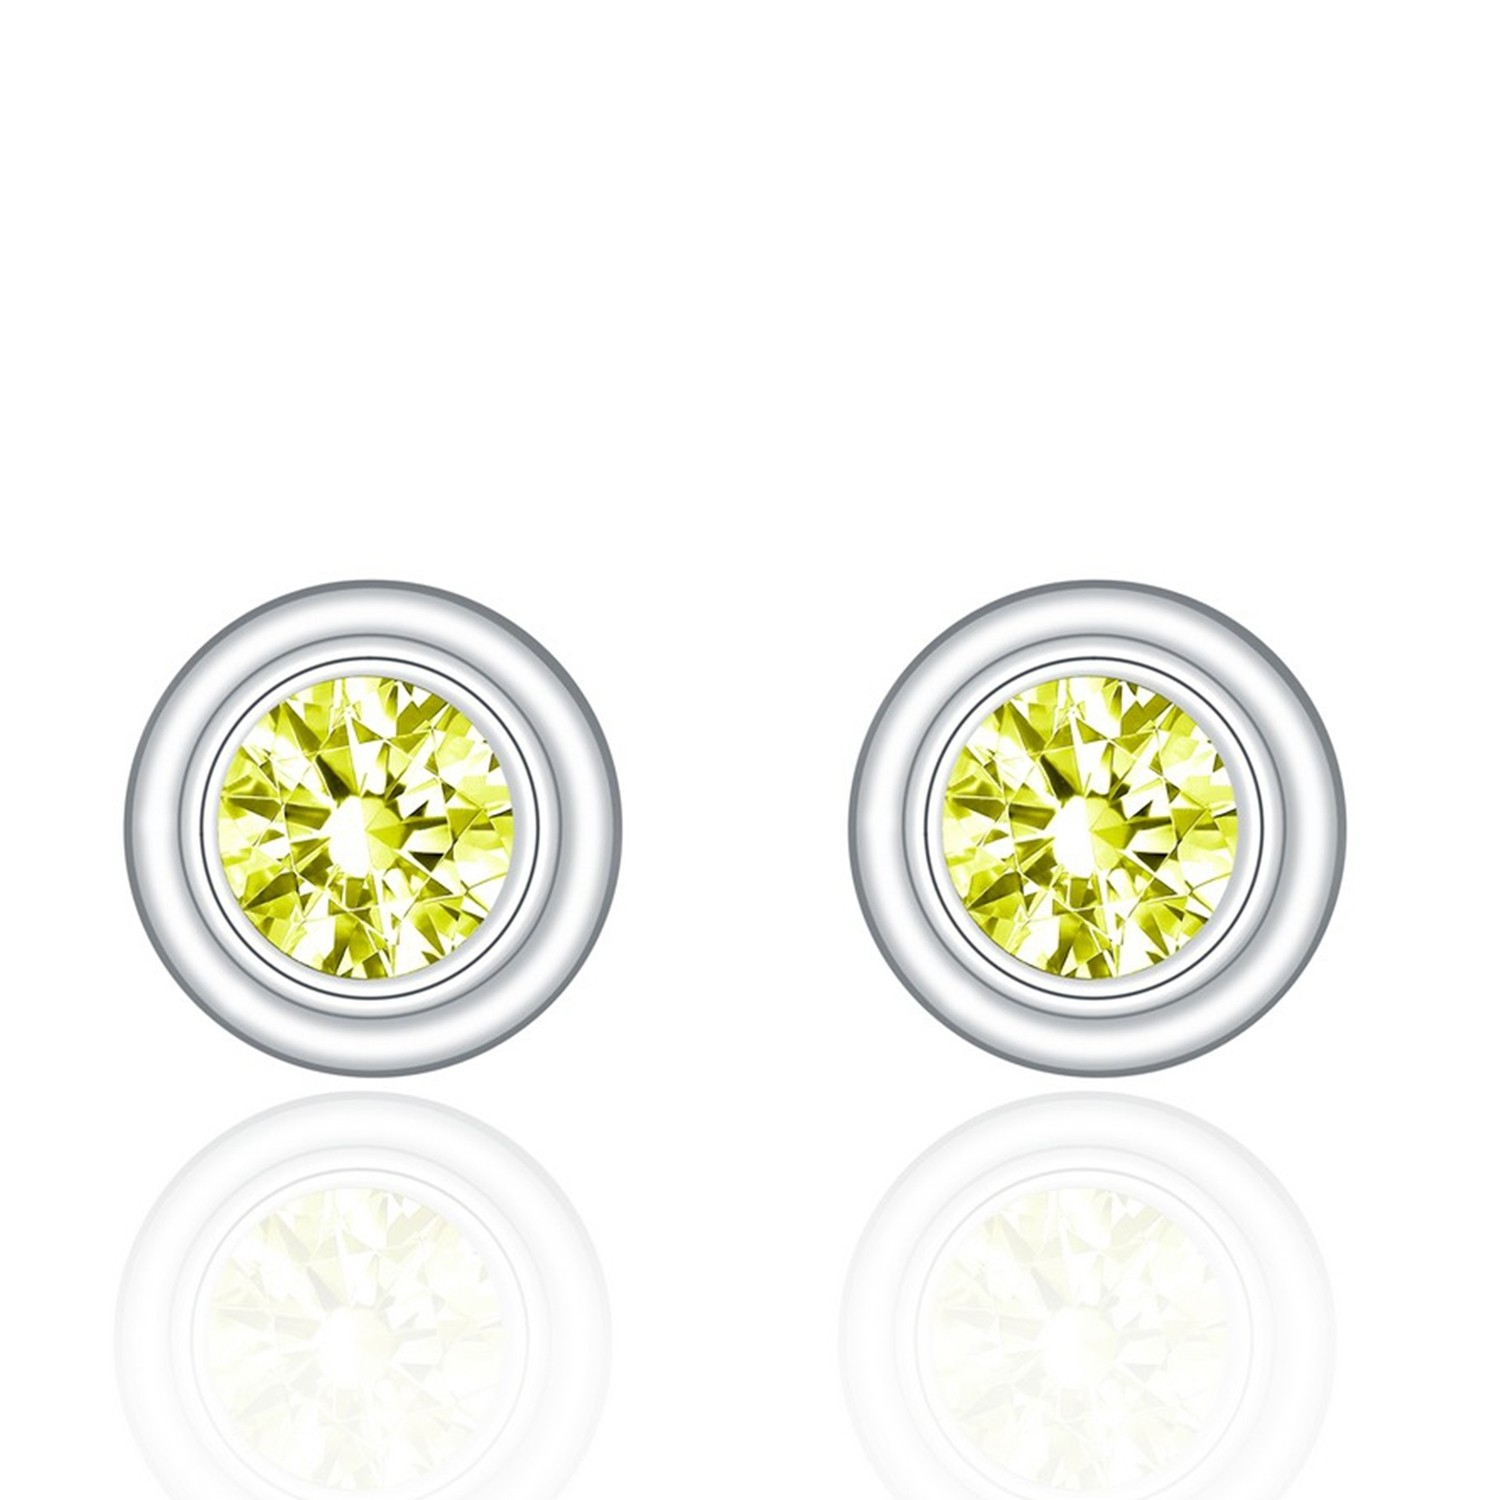 OEM&OEDM 925 sterling silver round yellow cubic zirconia stud earrings